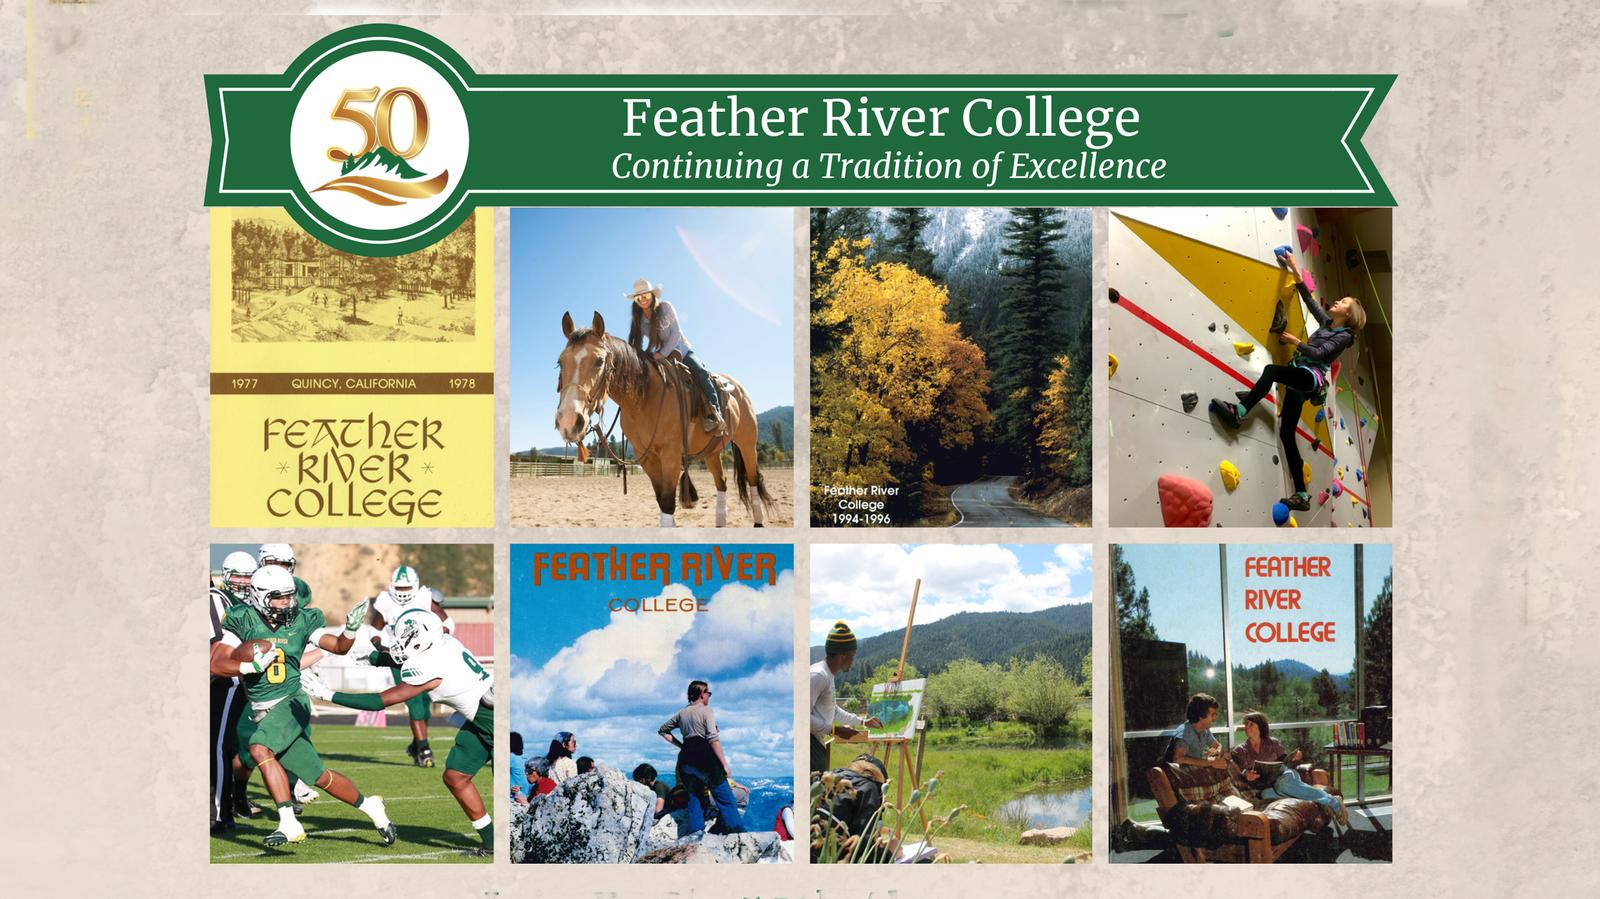 Feather River College Celebrates its 50th Anniversary!